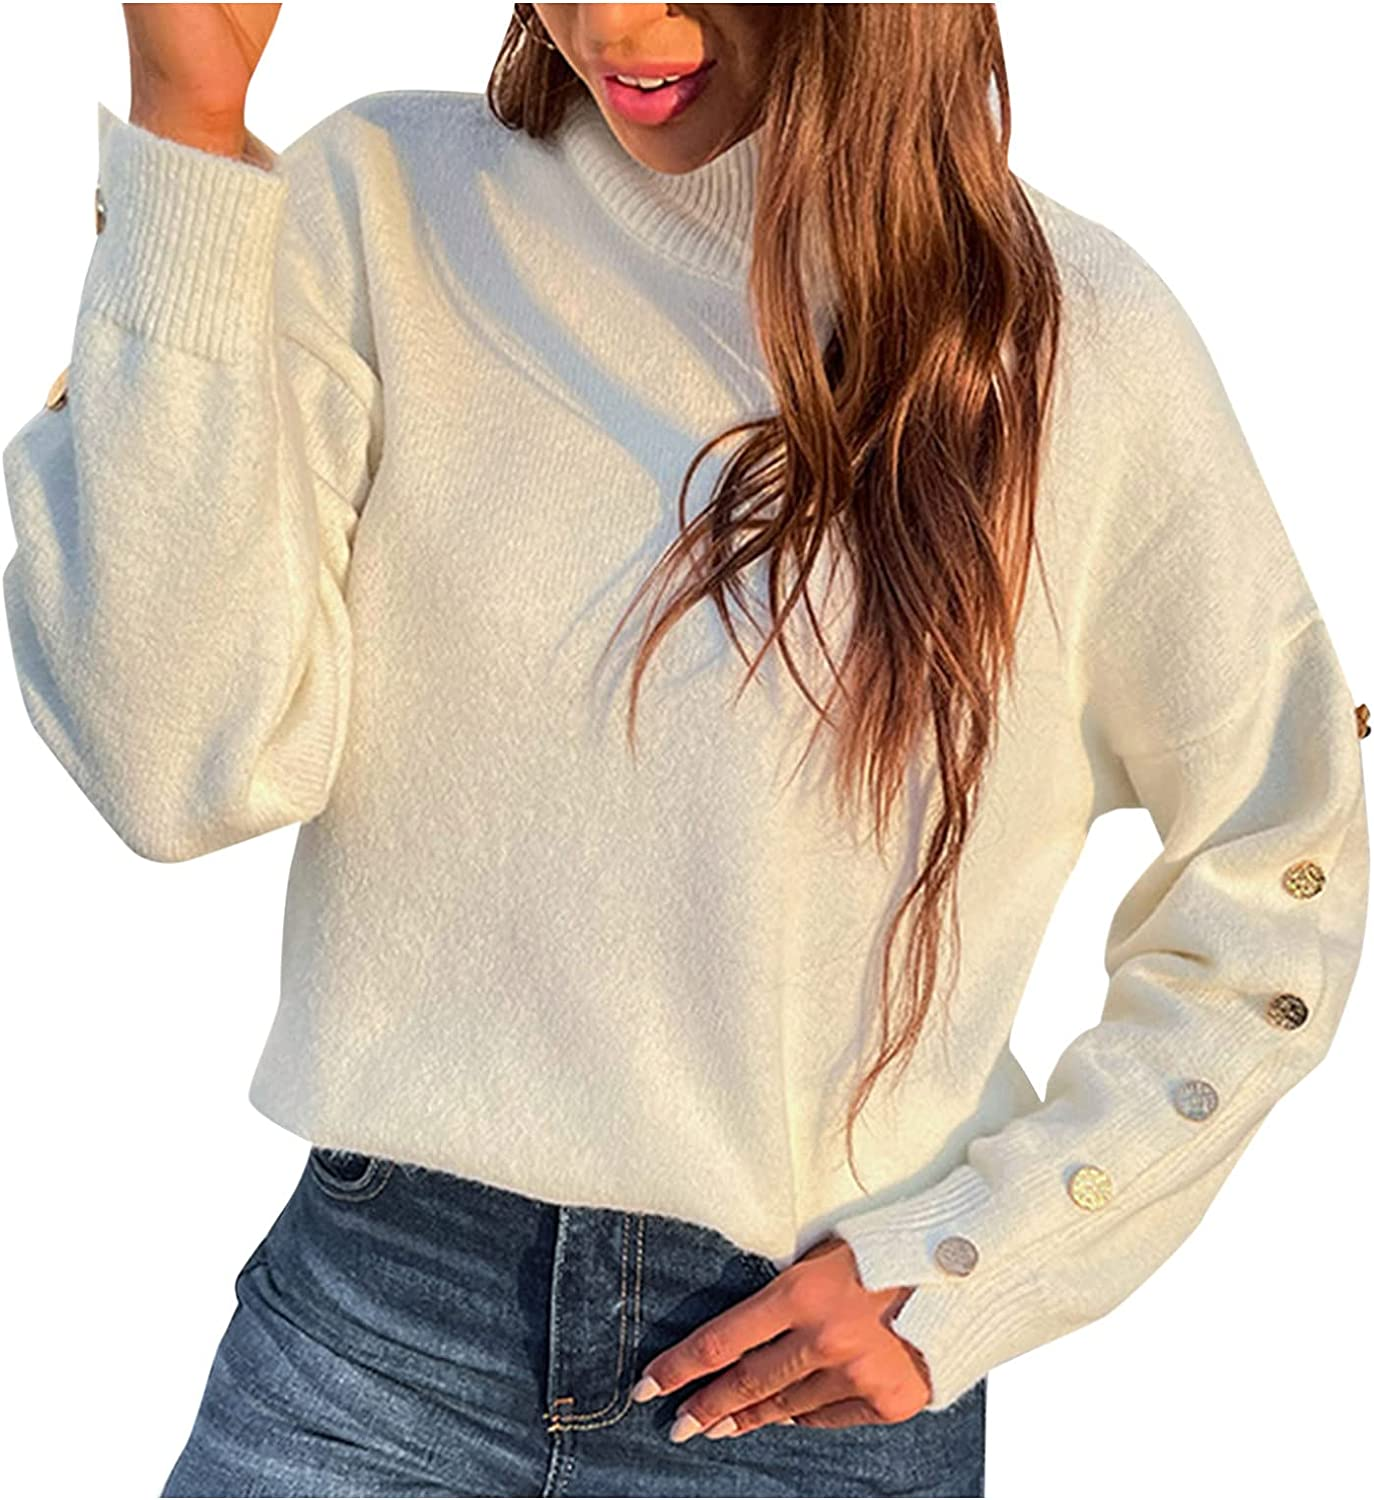 Womens Cozy Long Sleeve Turtleneck Pullover Sweaters Soft Solid Color Ribbed Knitted Casual Winter Pullover Sweater Tops